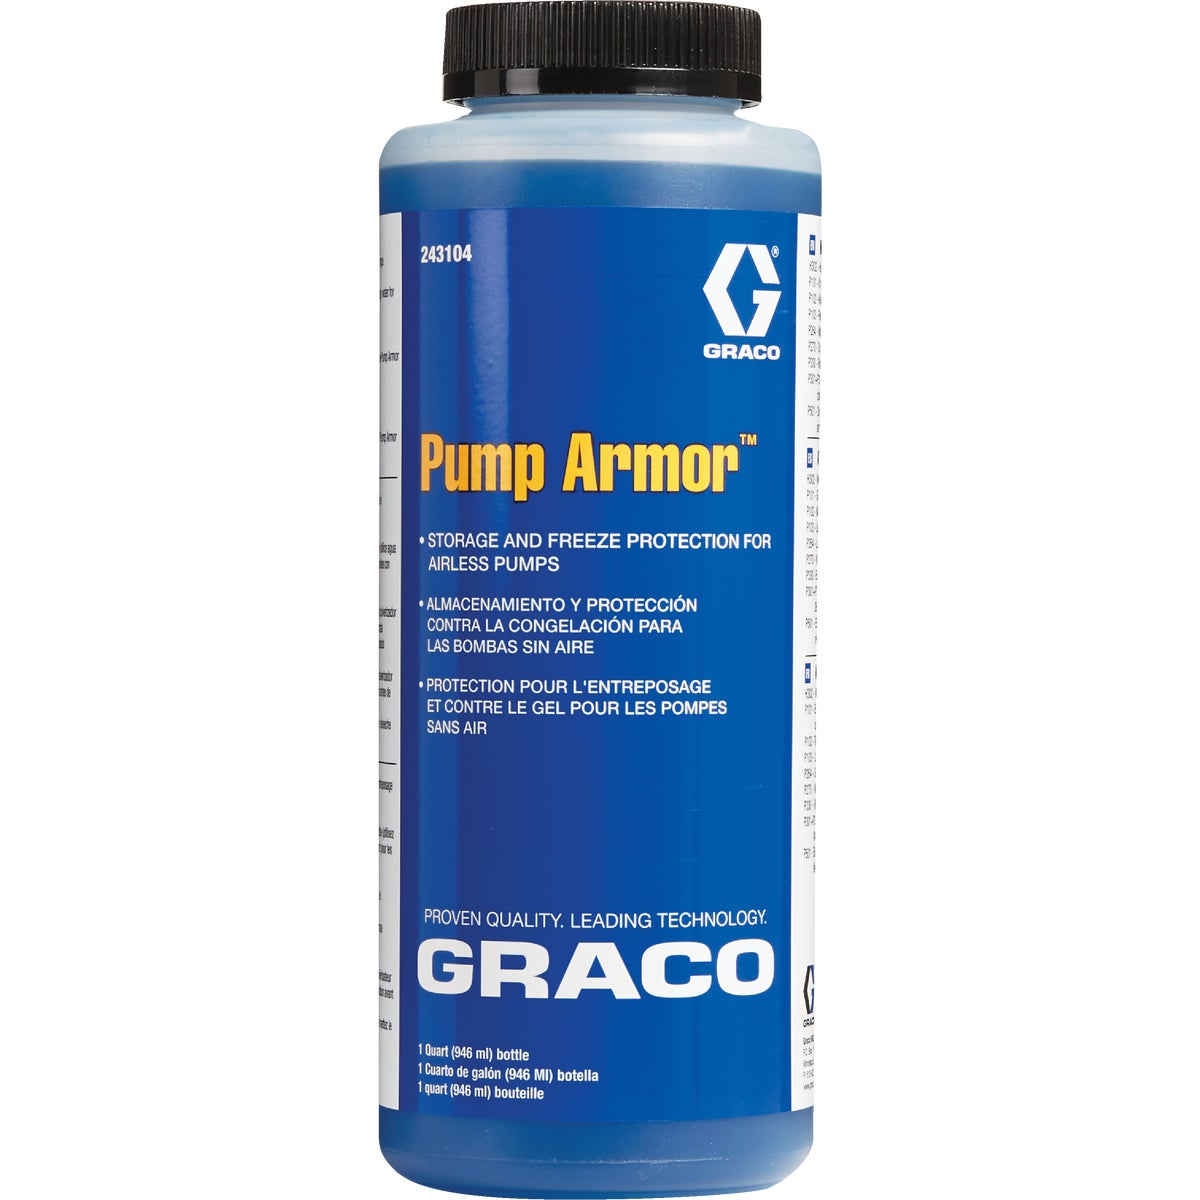 1QT MAGNUM PUMP ARMOR - 243104 by Graco Inc